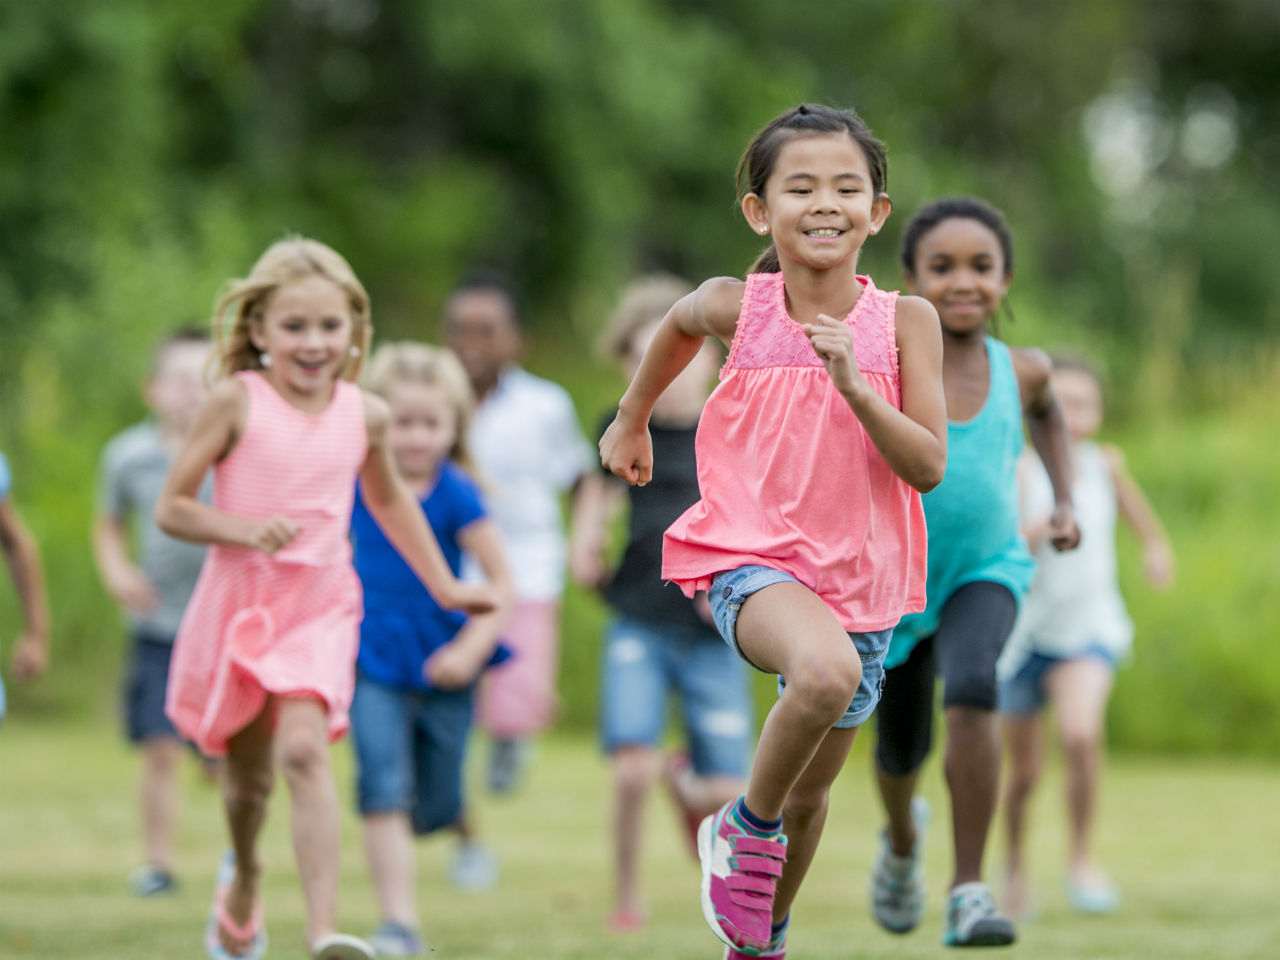 Physical Activity Can Prevent Depression In Kids